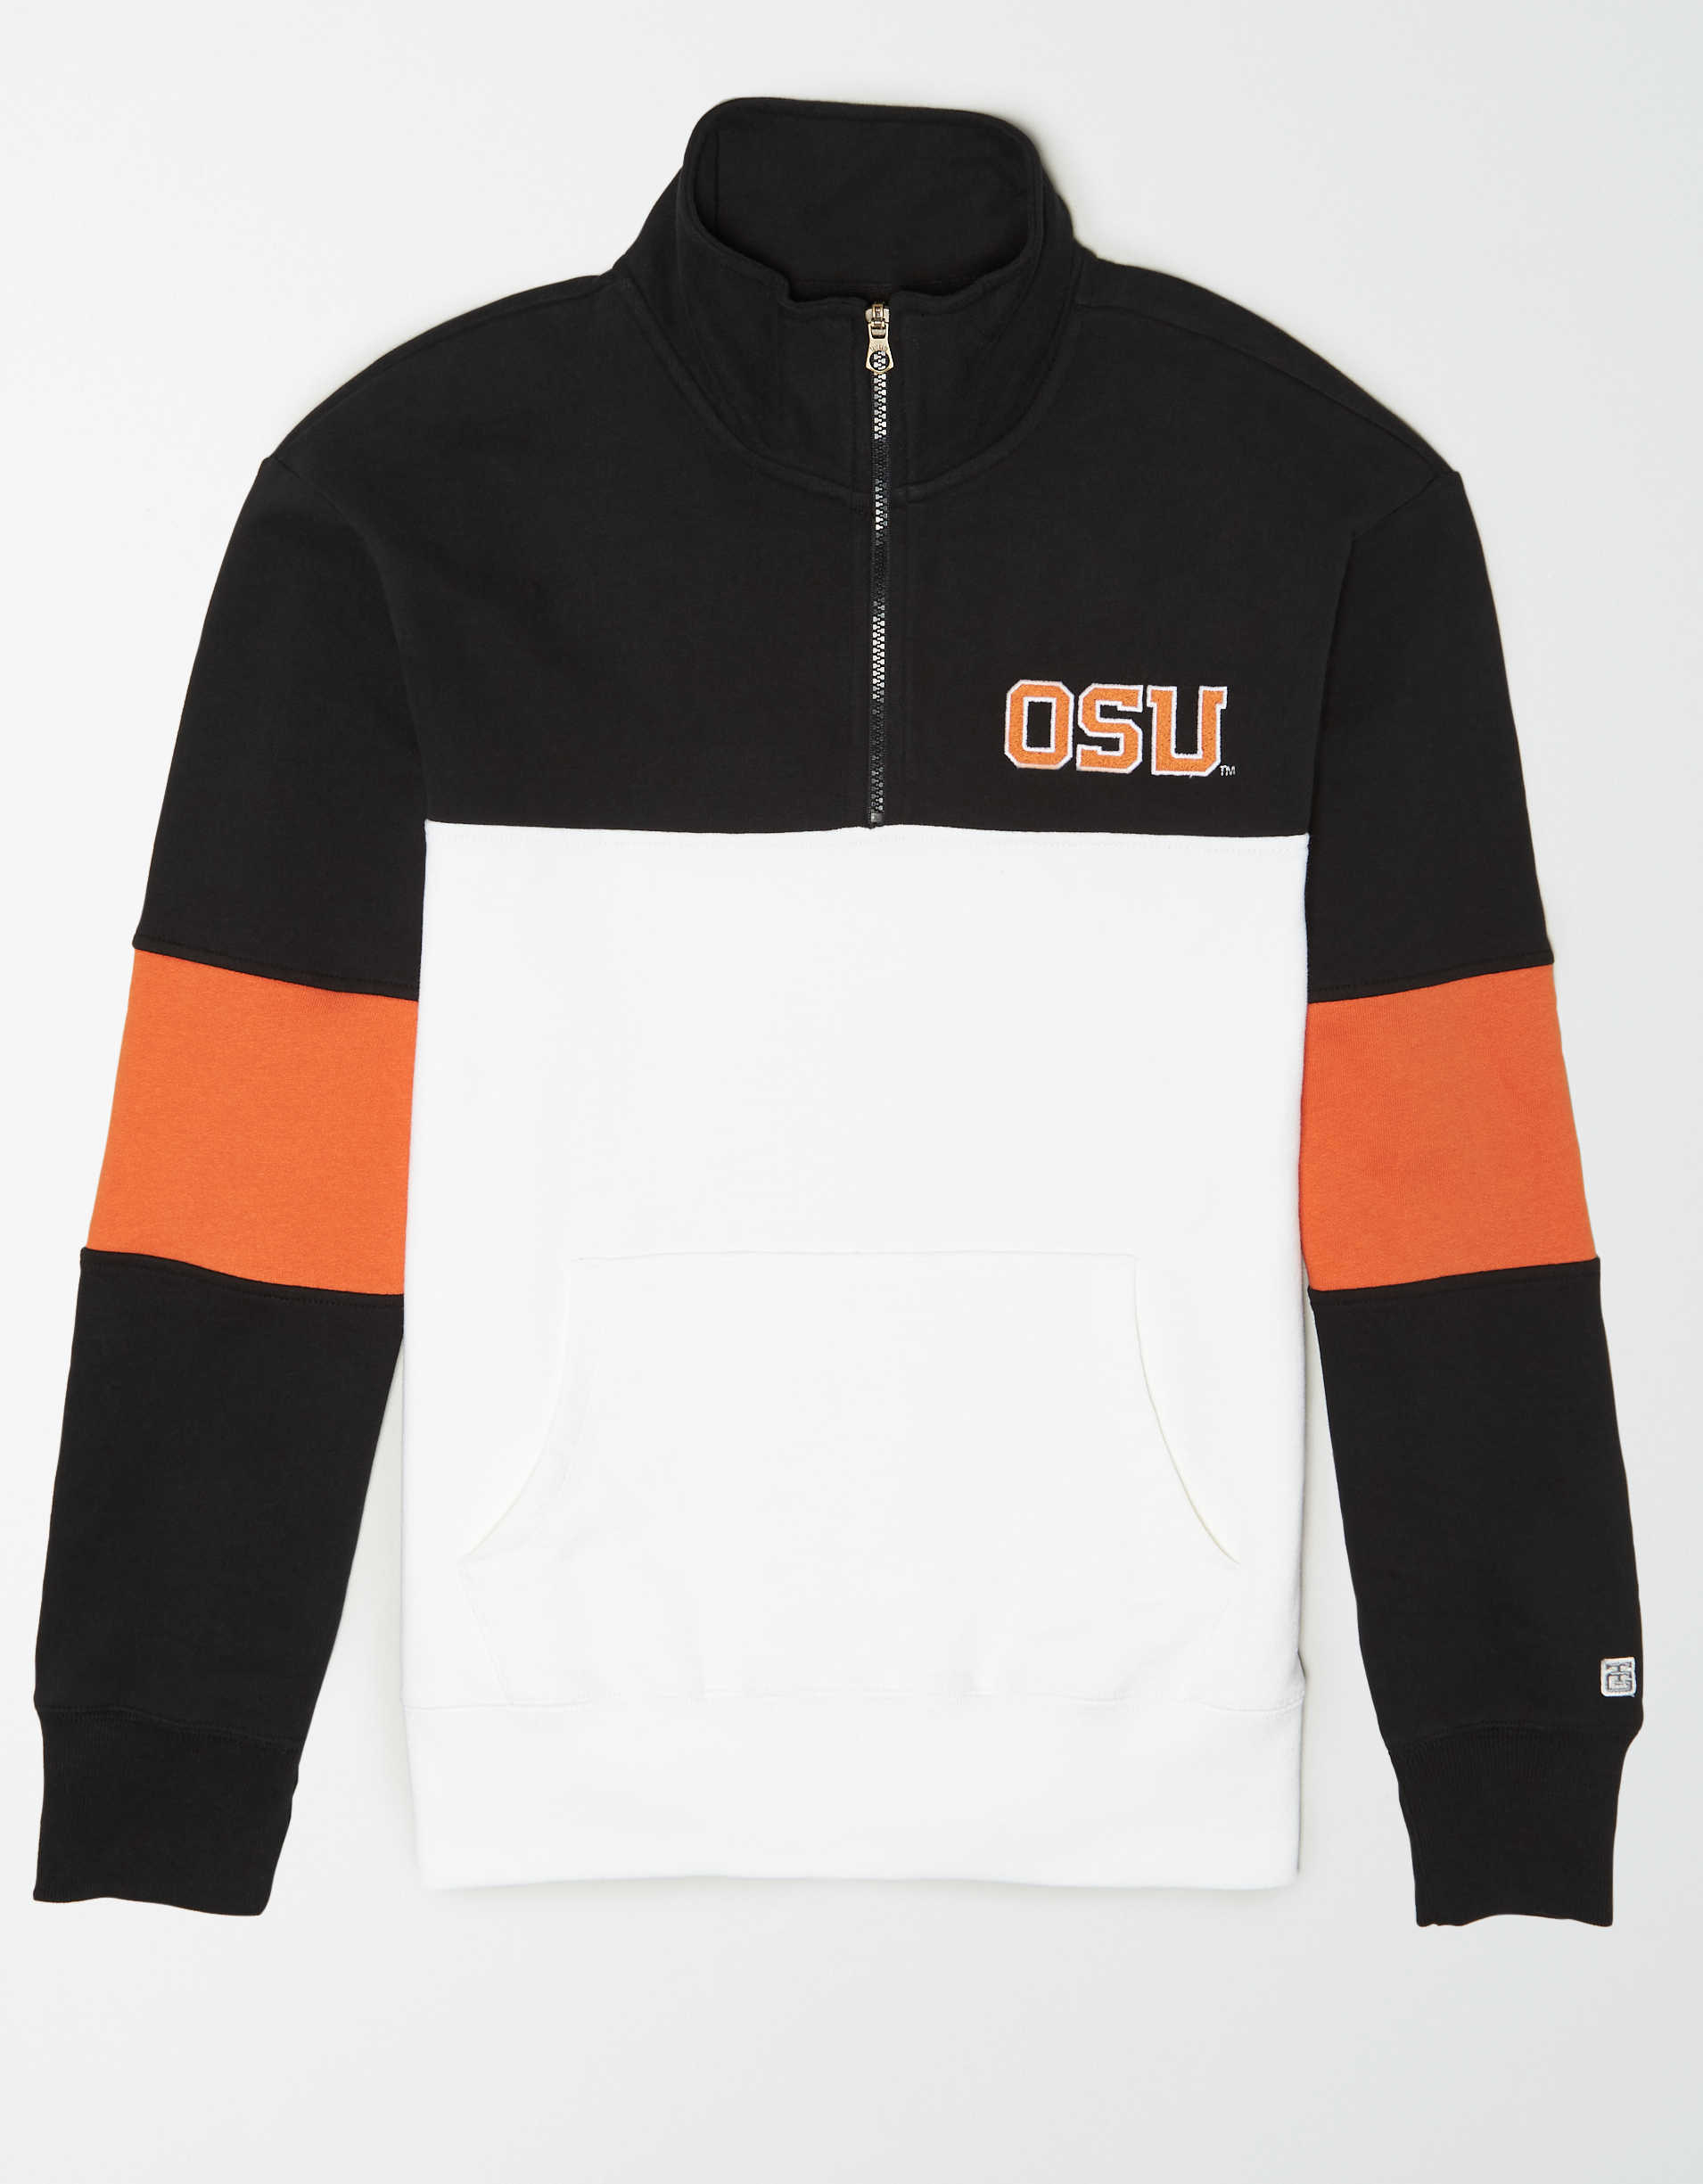 Tailgate Men's Oregon State Beavers Quarter-Zip Sweatshirt